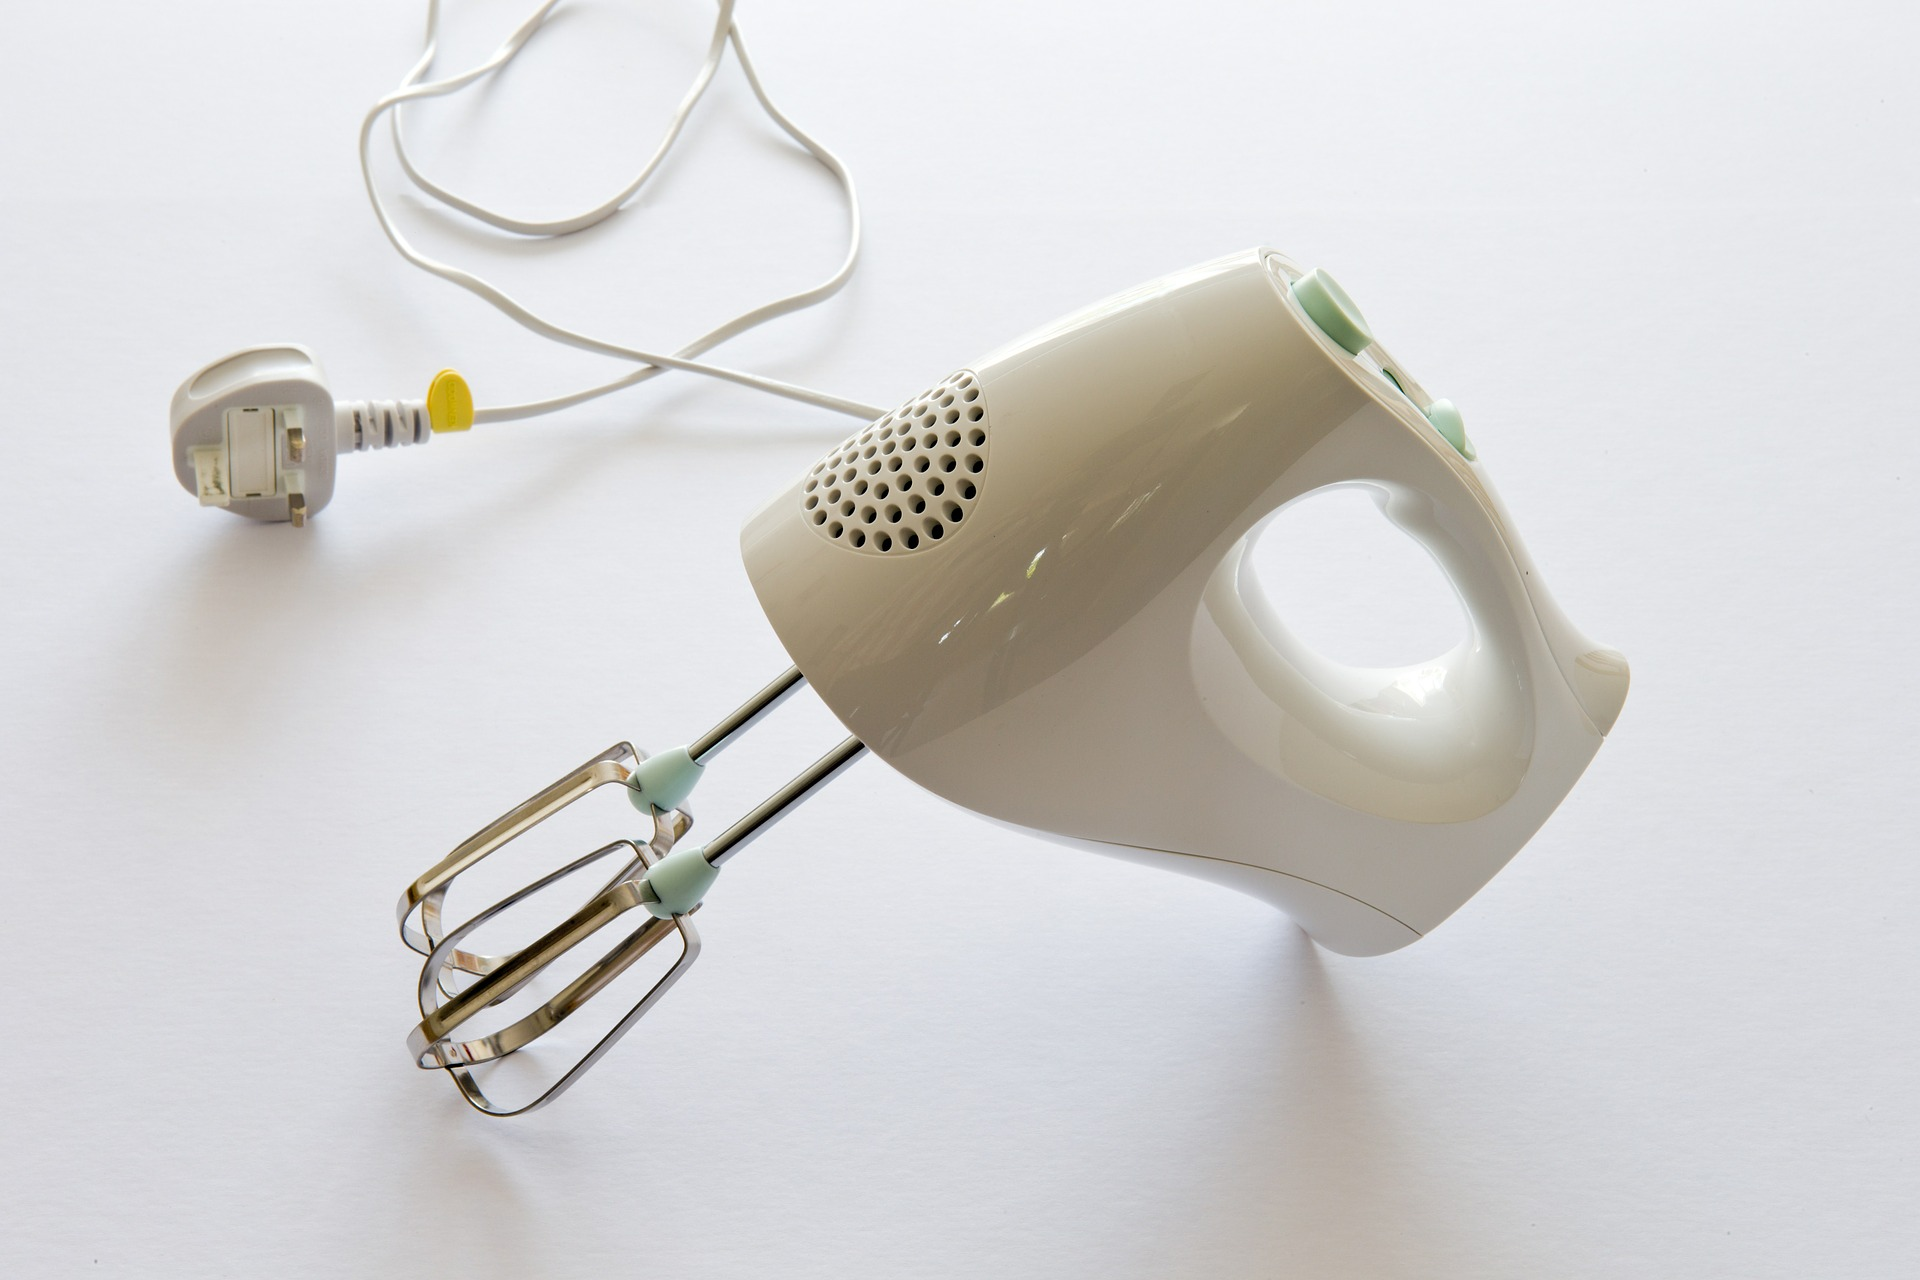 Best Hand Mixer, Reviews, Guidelines, Capacity, Images, Price, Comparision